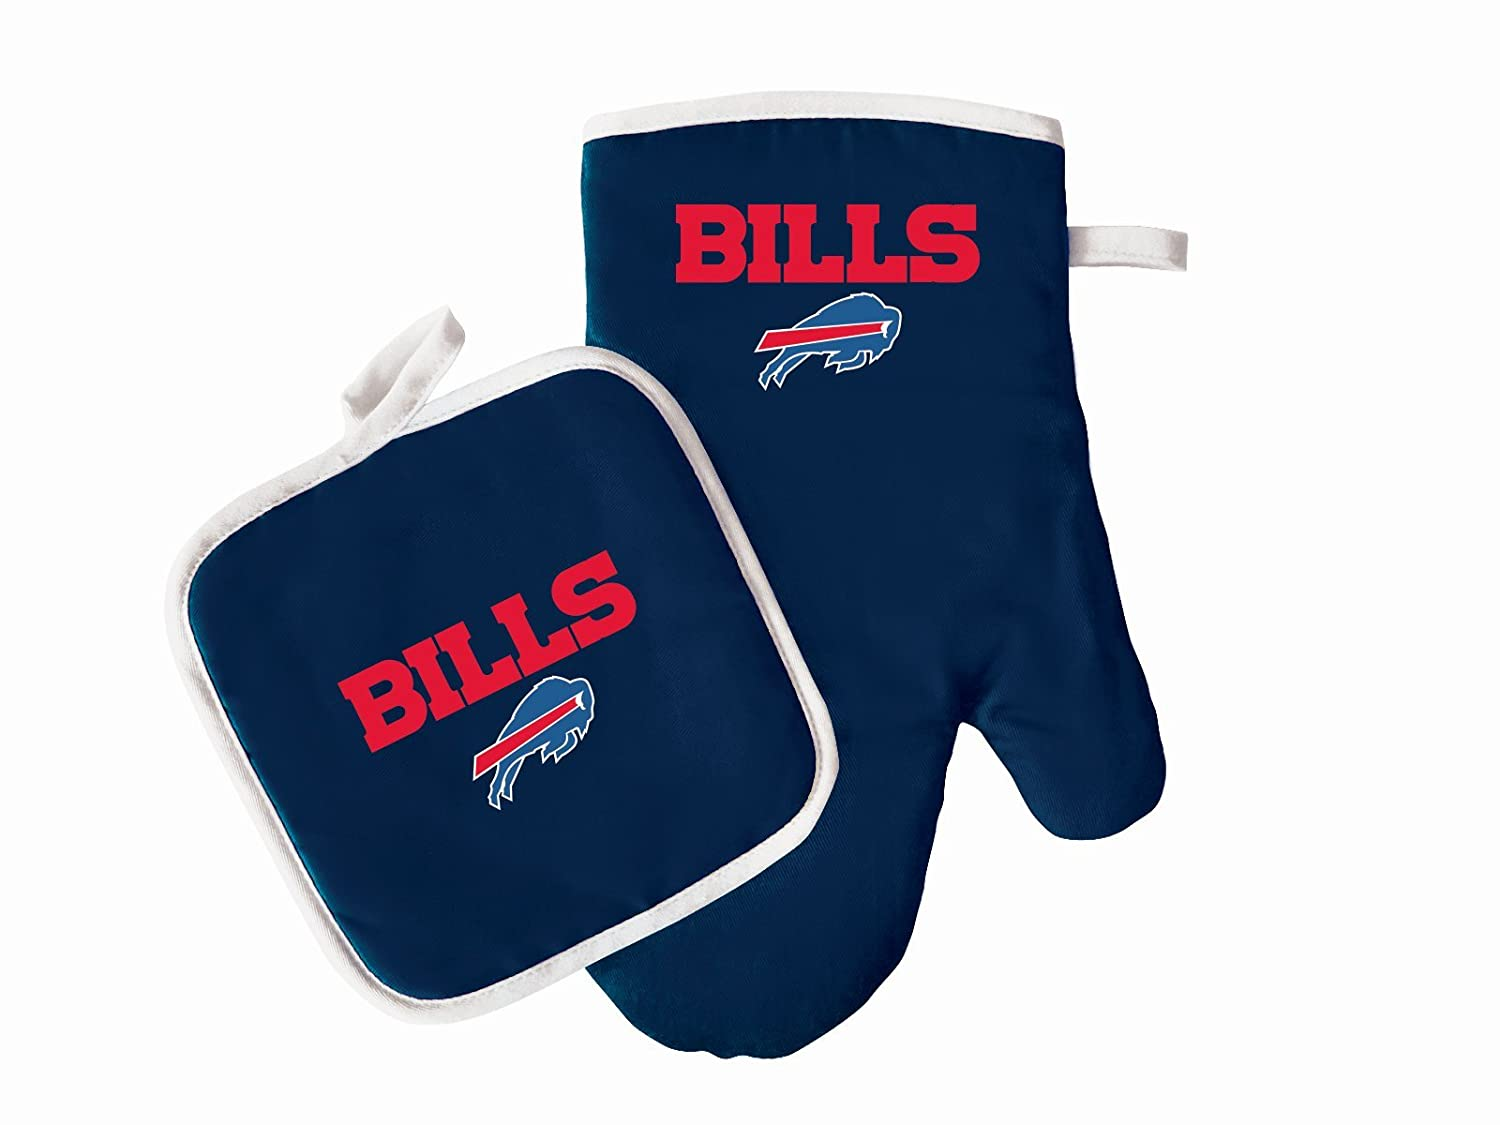 PSG Products Buffalo Bills Oven Mitt & Pot Holder Set Cooking Grilling Barbecue NFL Football